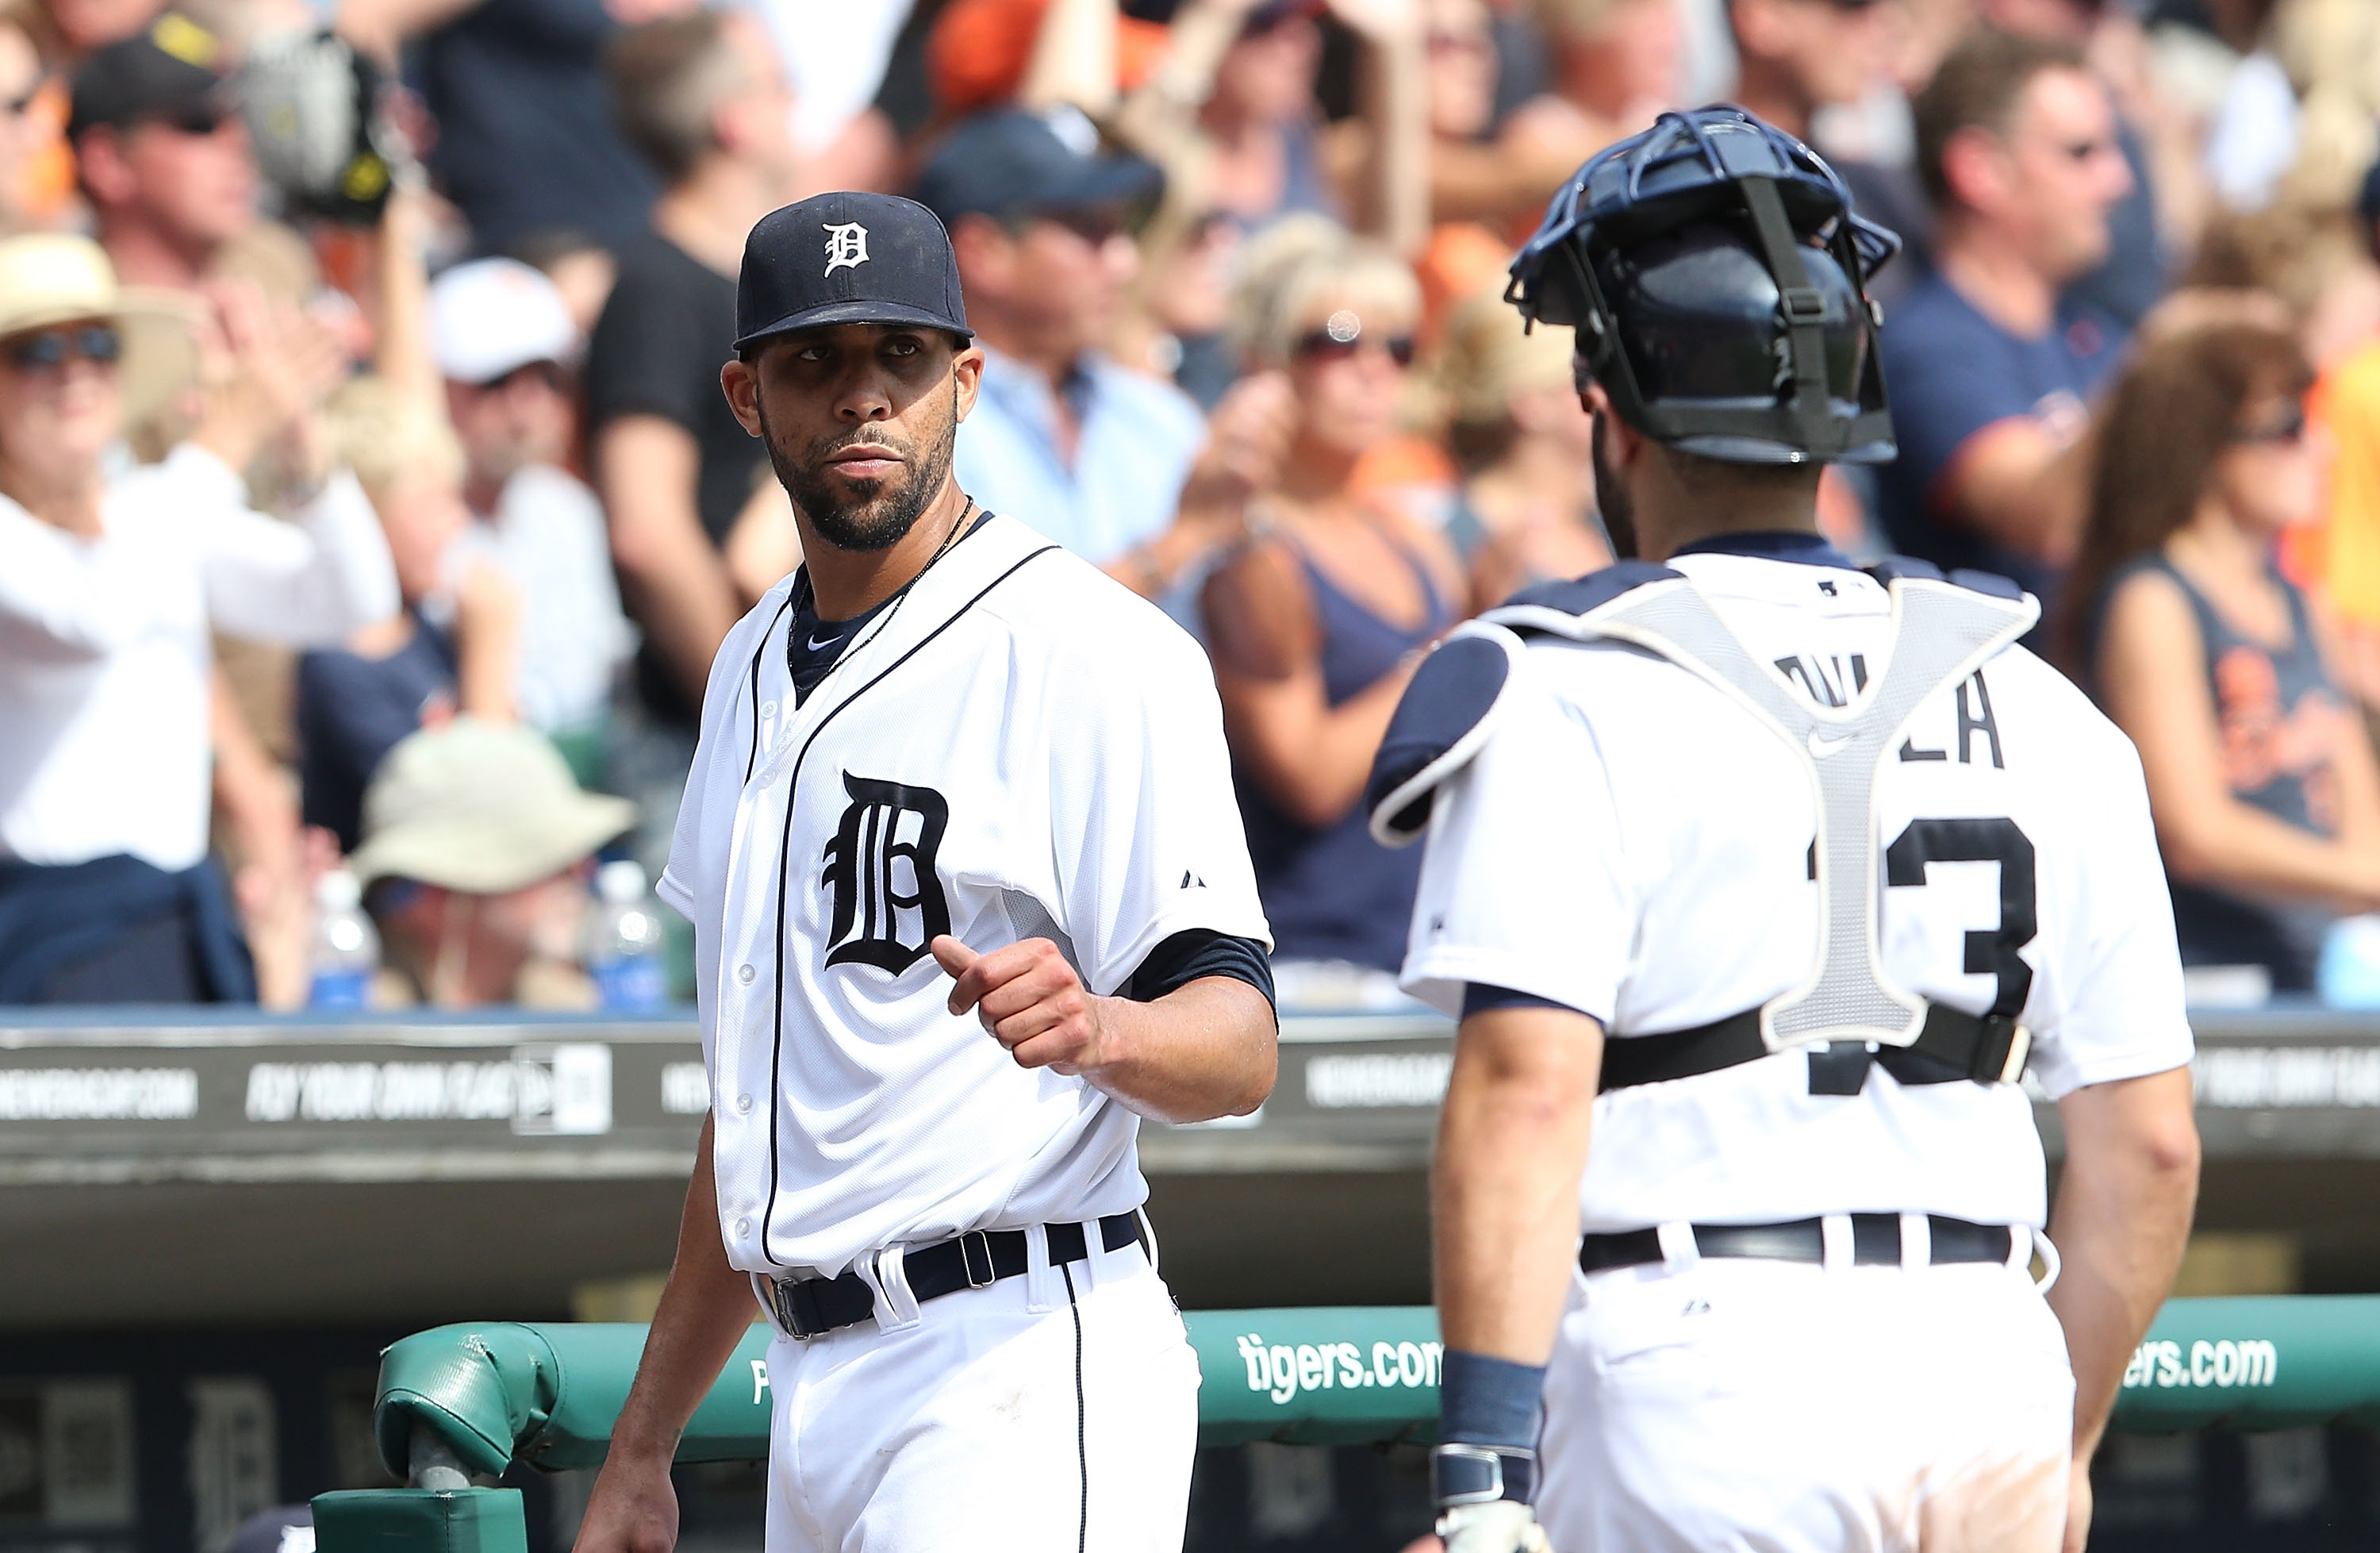 Tigers trade rumors: 'Rebooting' team makes David Price, Yoenis Cespedes available